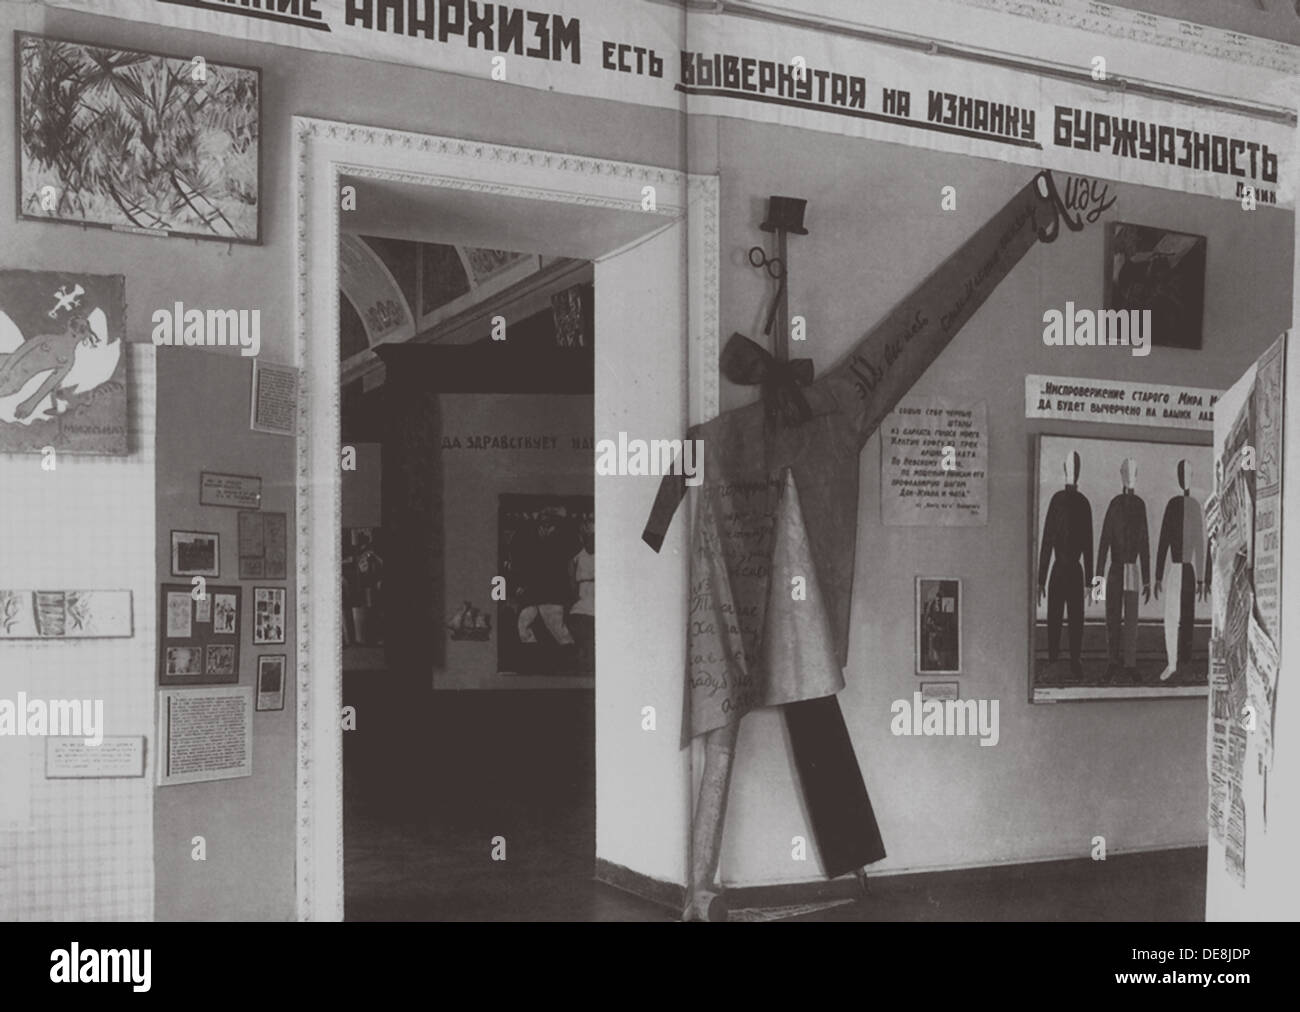 Interior of the Exhibition Art from the Age of Imperialism in the State Russian Museum in Leningrad. Artist: Anonymous - Stock Image